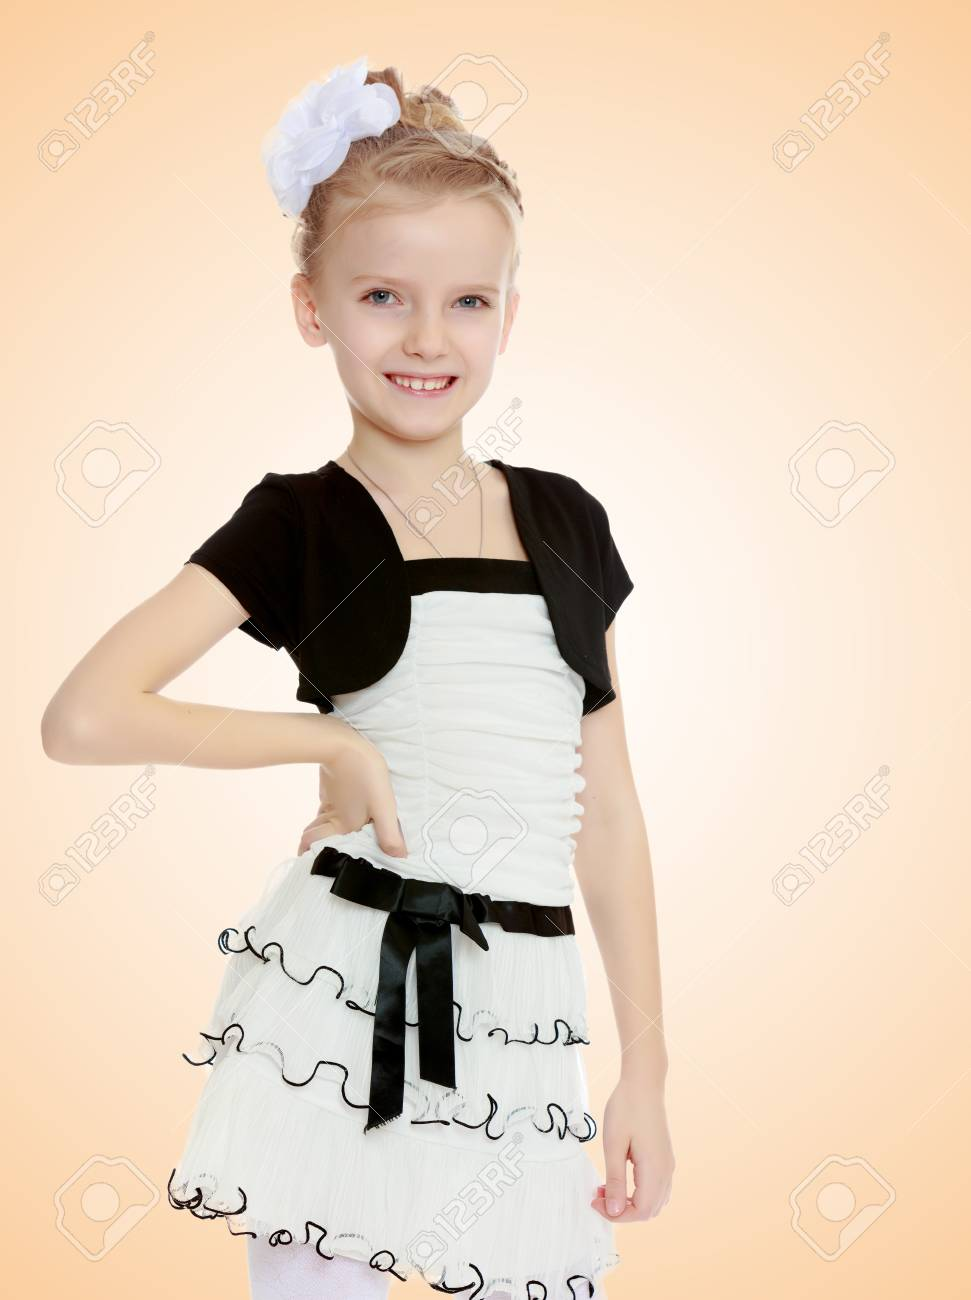 ee966b11f50e Beautiful Little Girl In A White Short Dress With A Black Belt ...